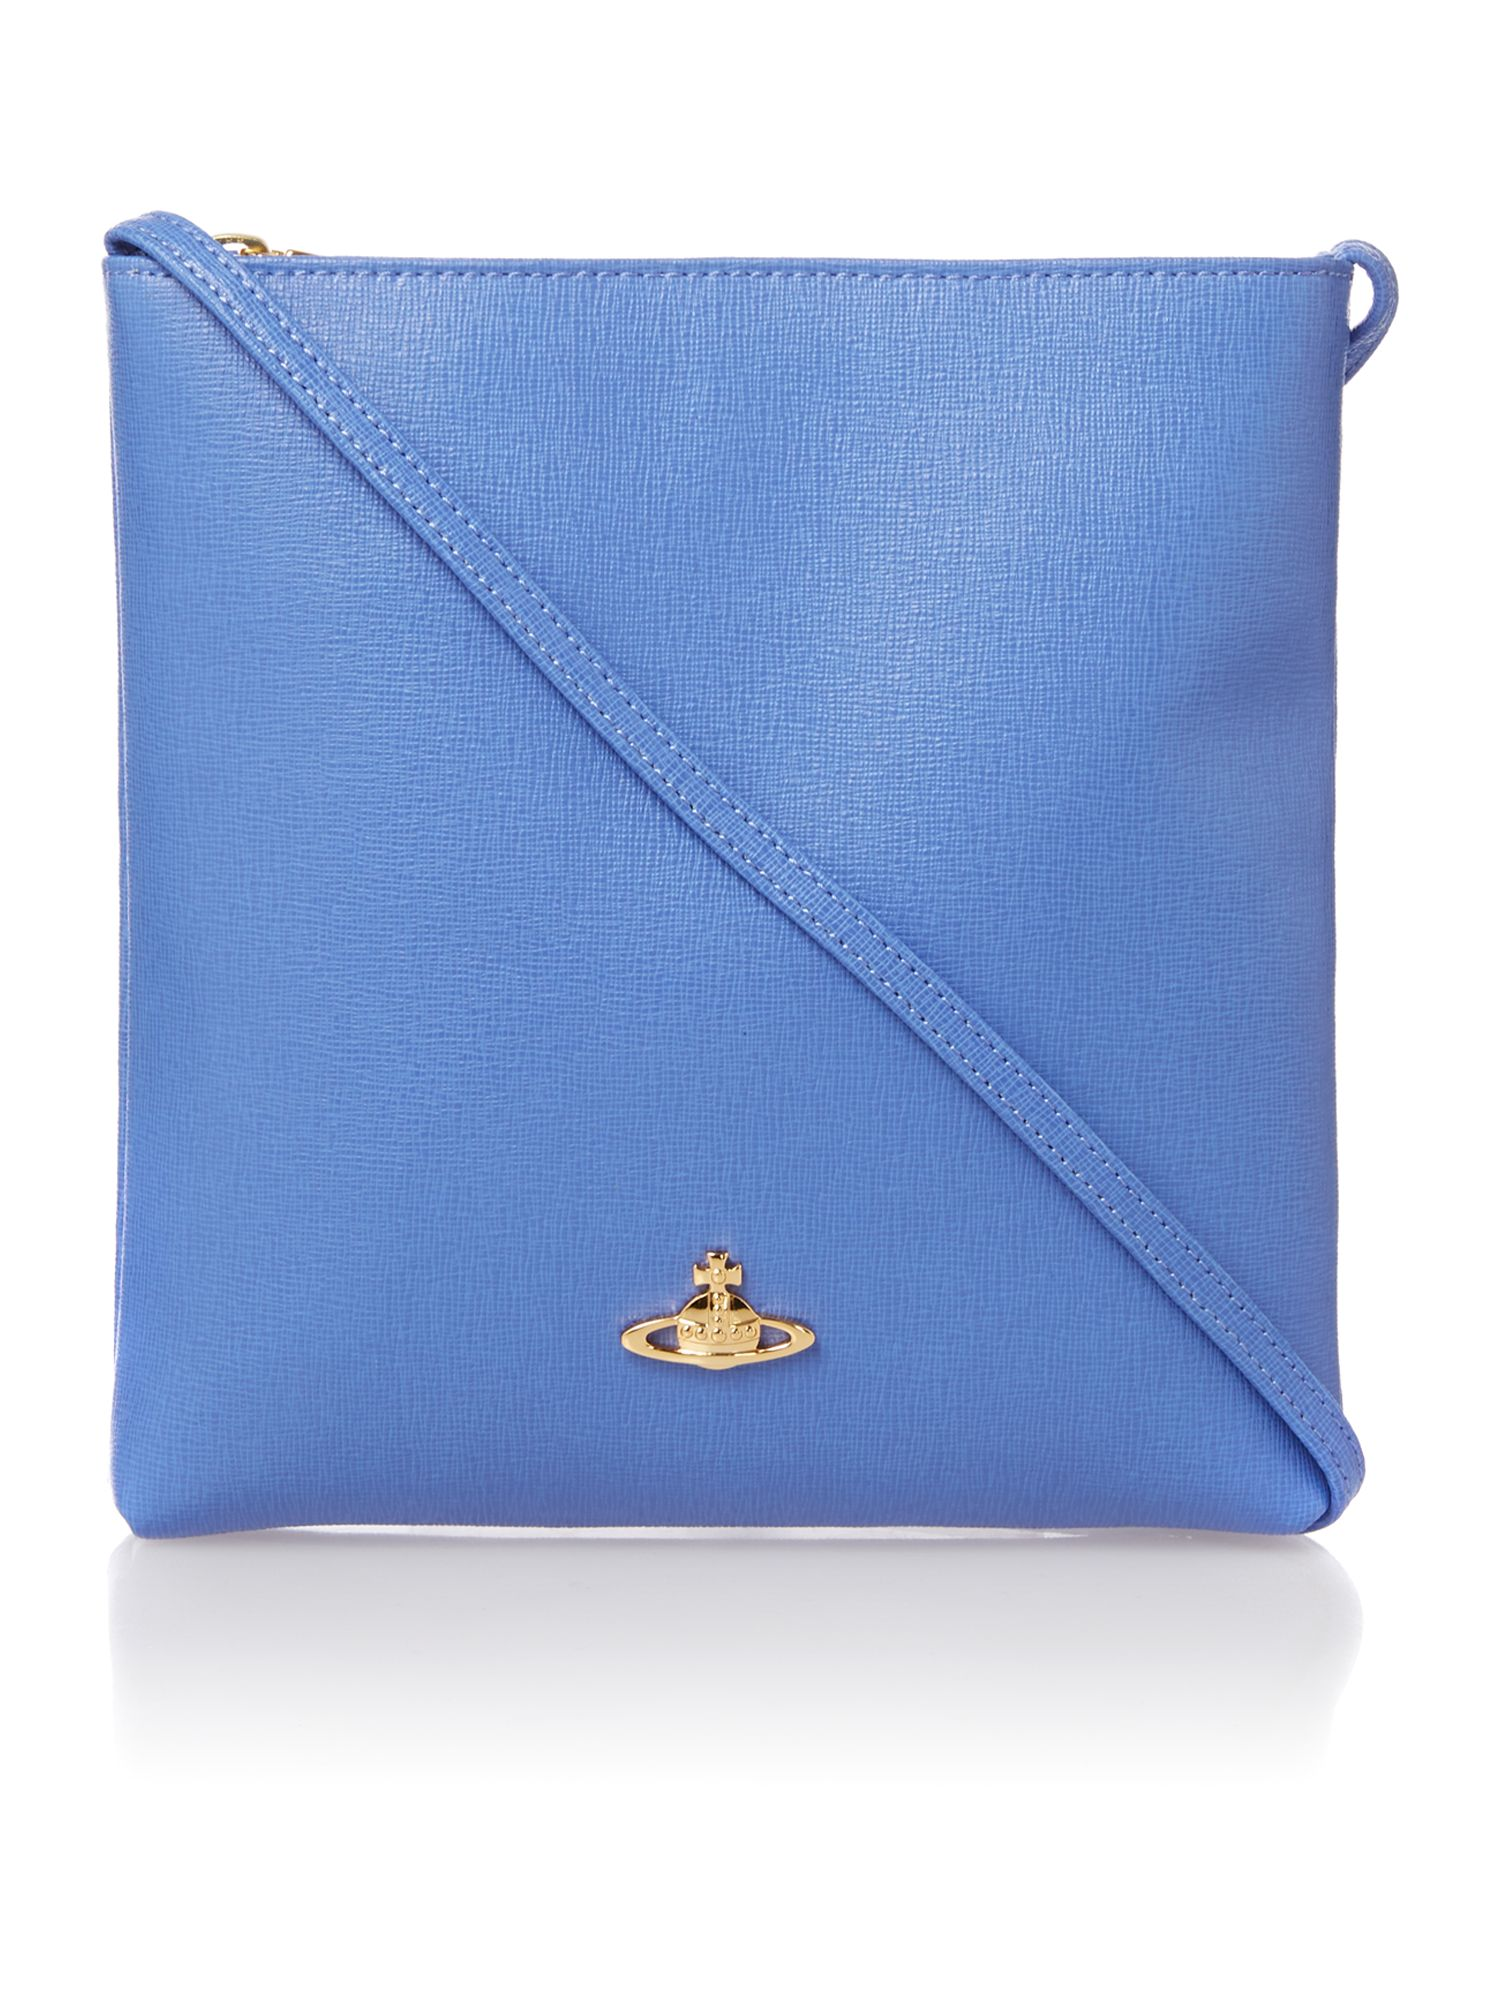 Divina blue cross body bag